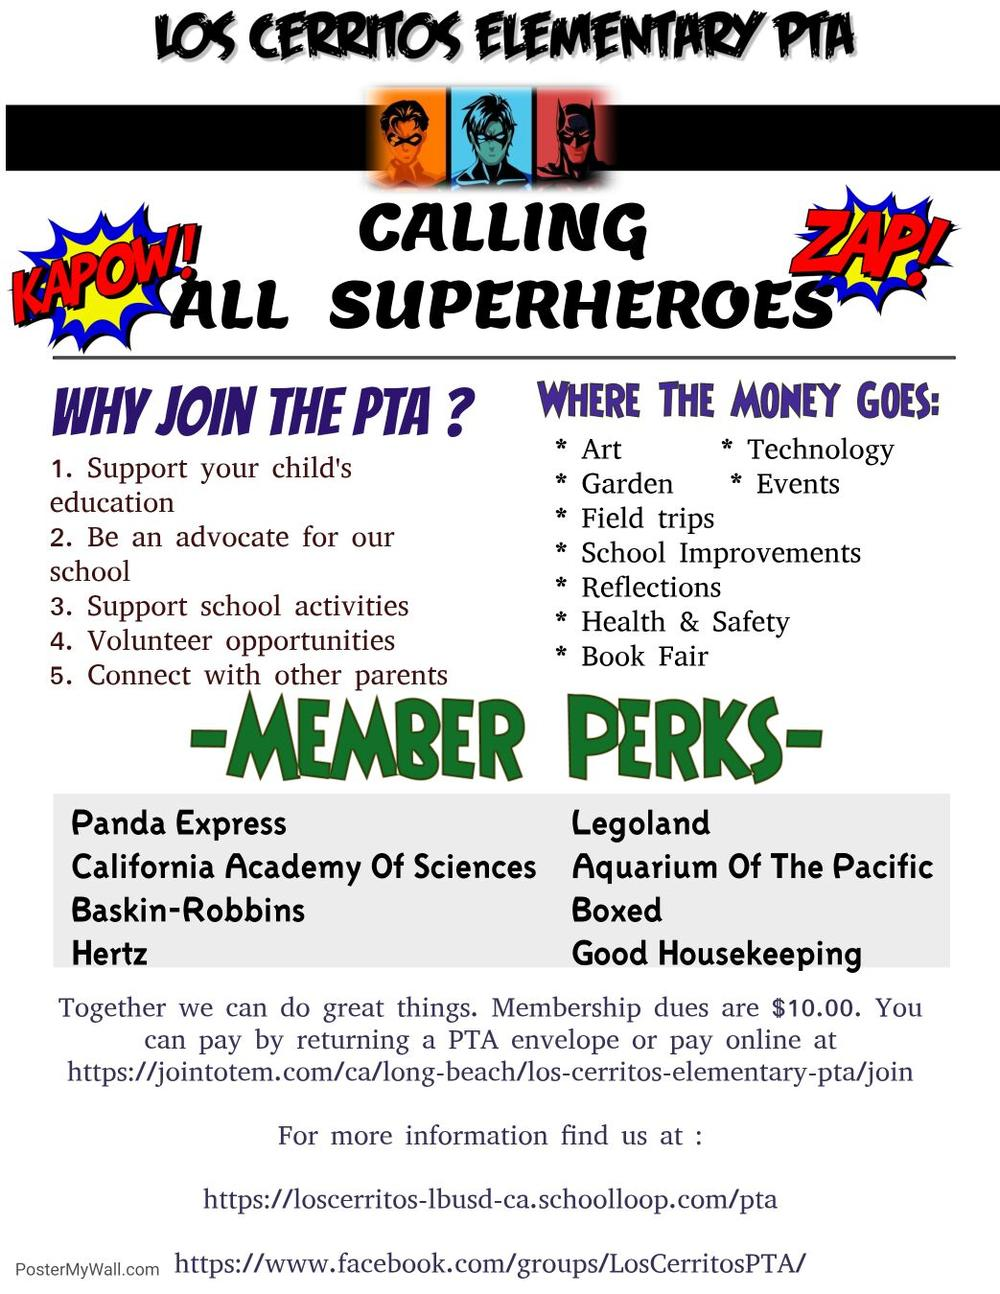 Calling all superheroes flyer